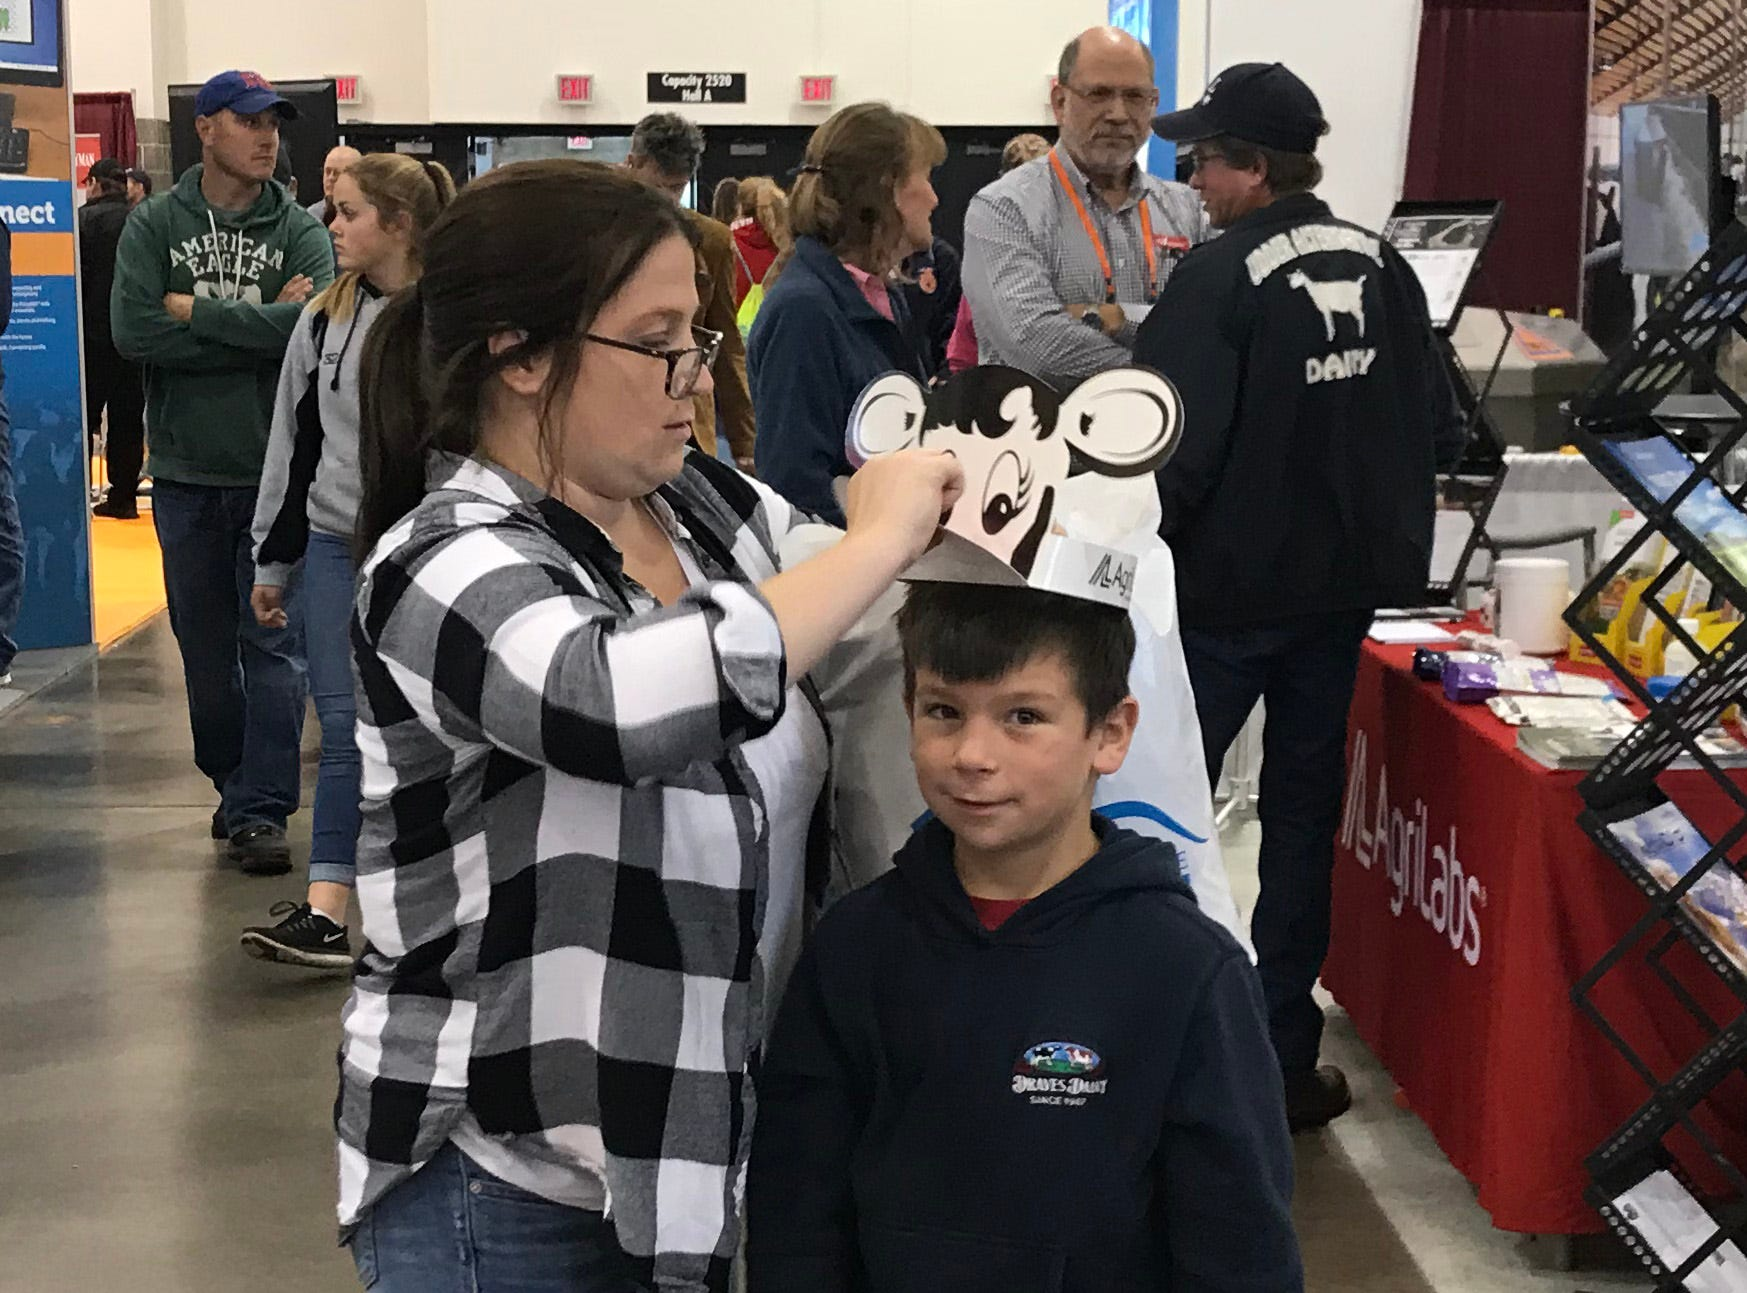 Cool cow hats were all the rage among young attendees at World Dairy Expo.